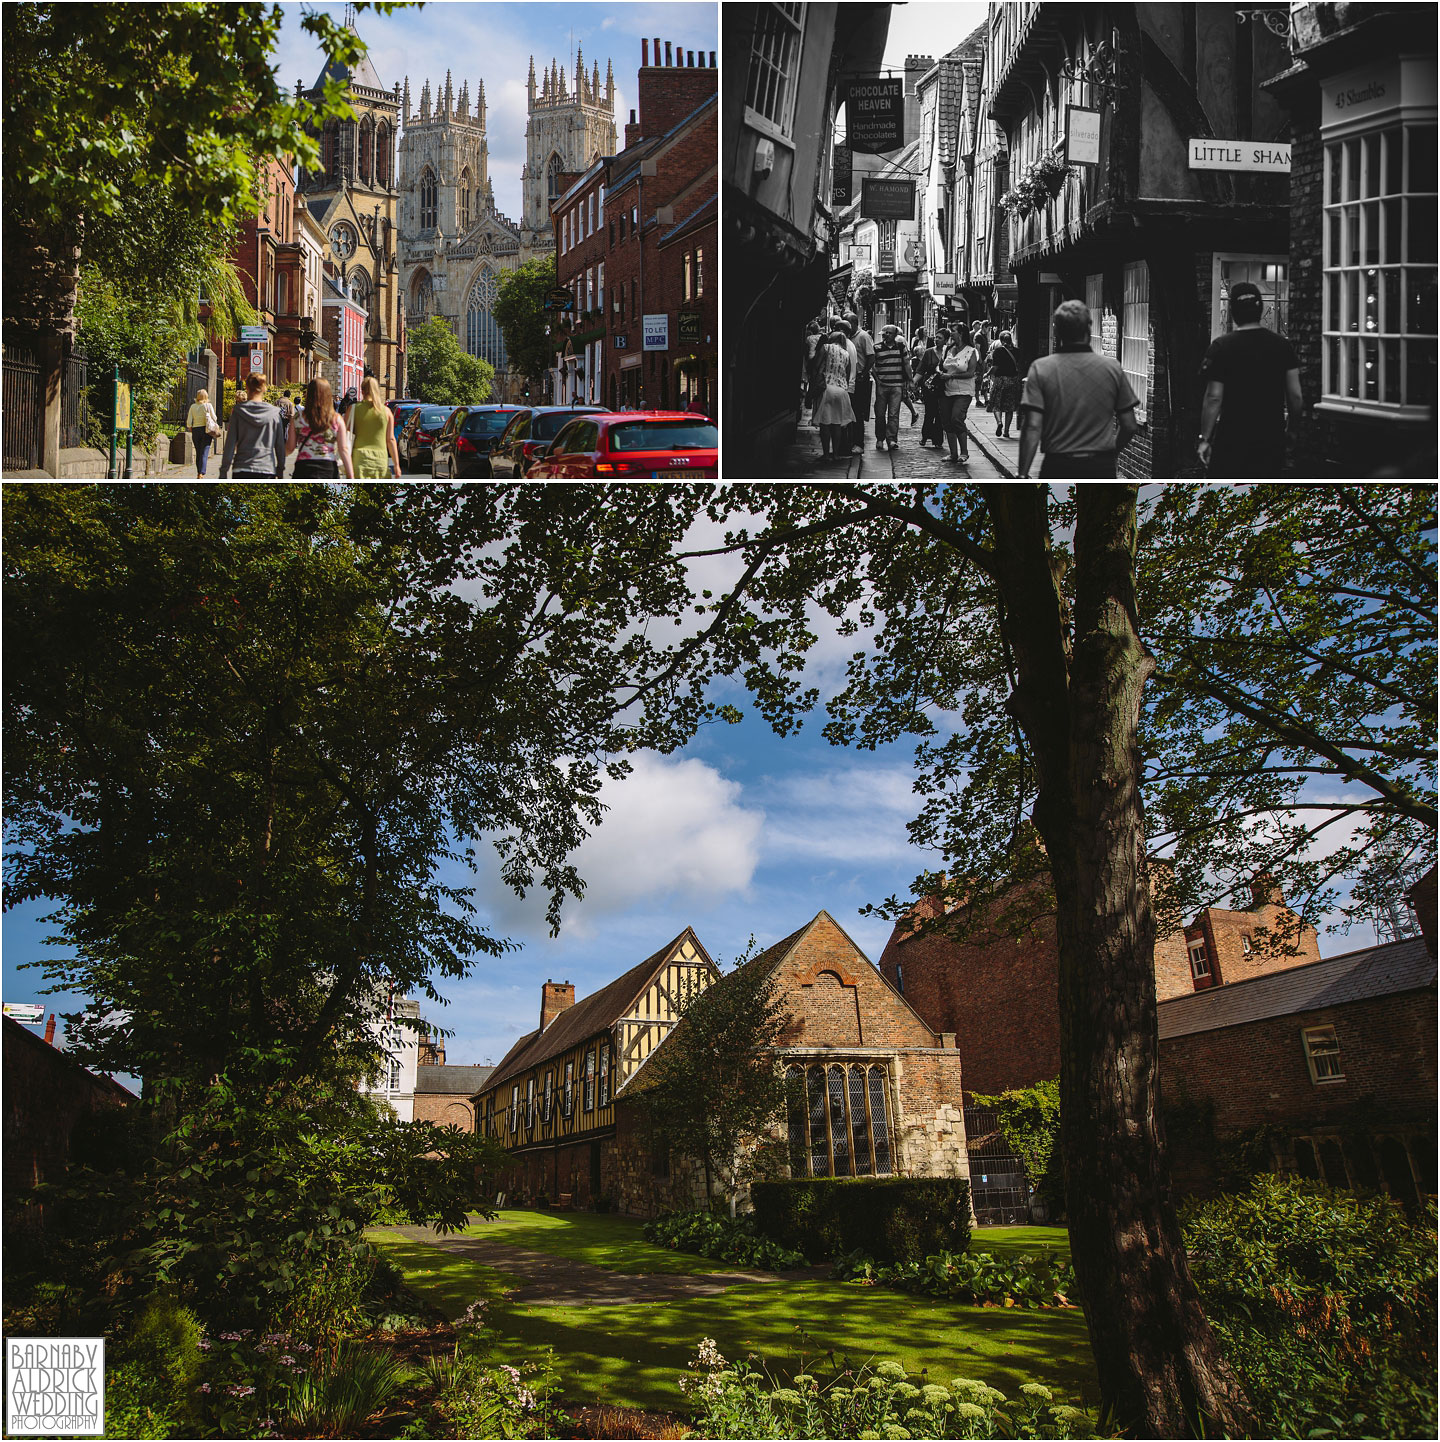 A contextual wedding photograph of York city centre showing the ancient Minster the shambles and The Merchant Adventurers hall